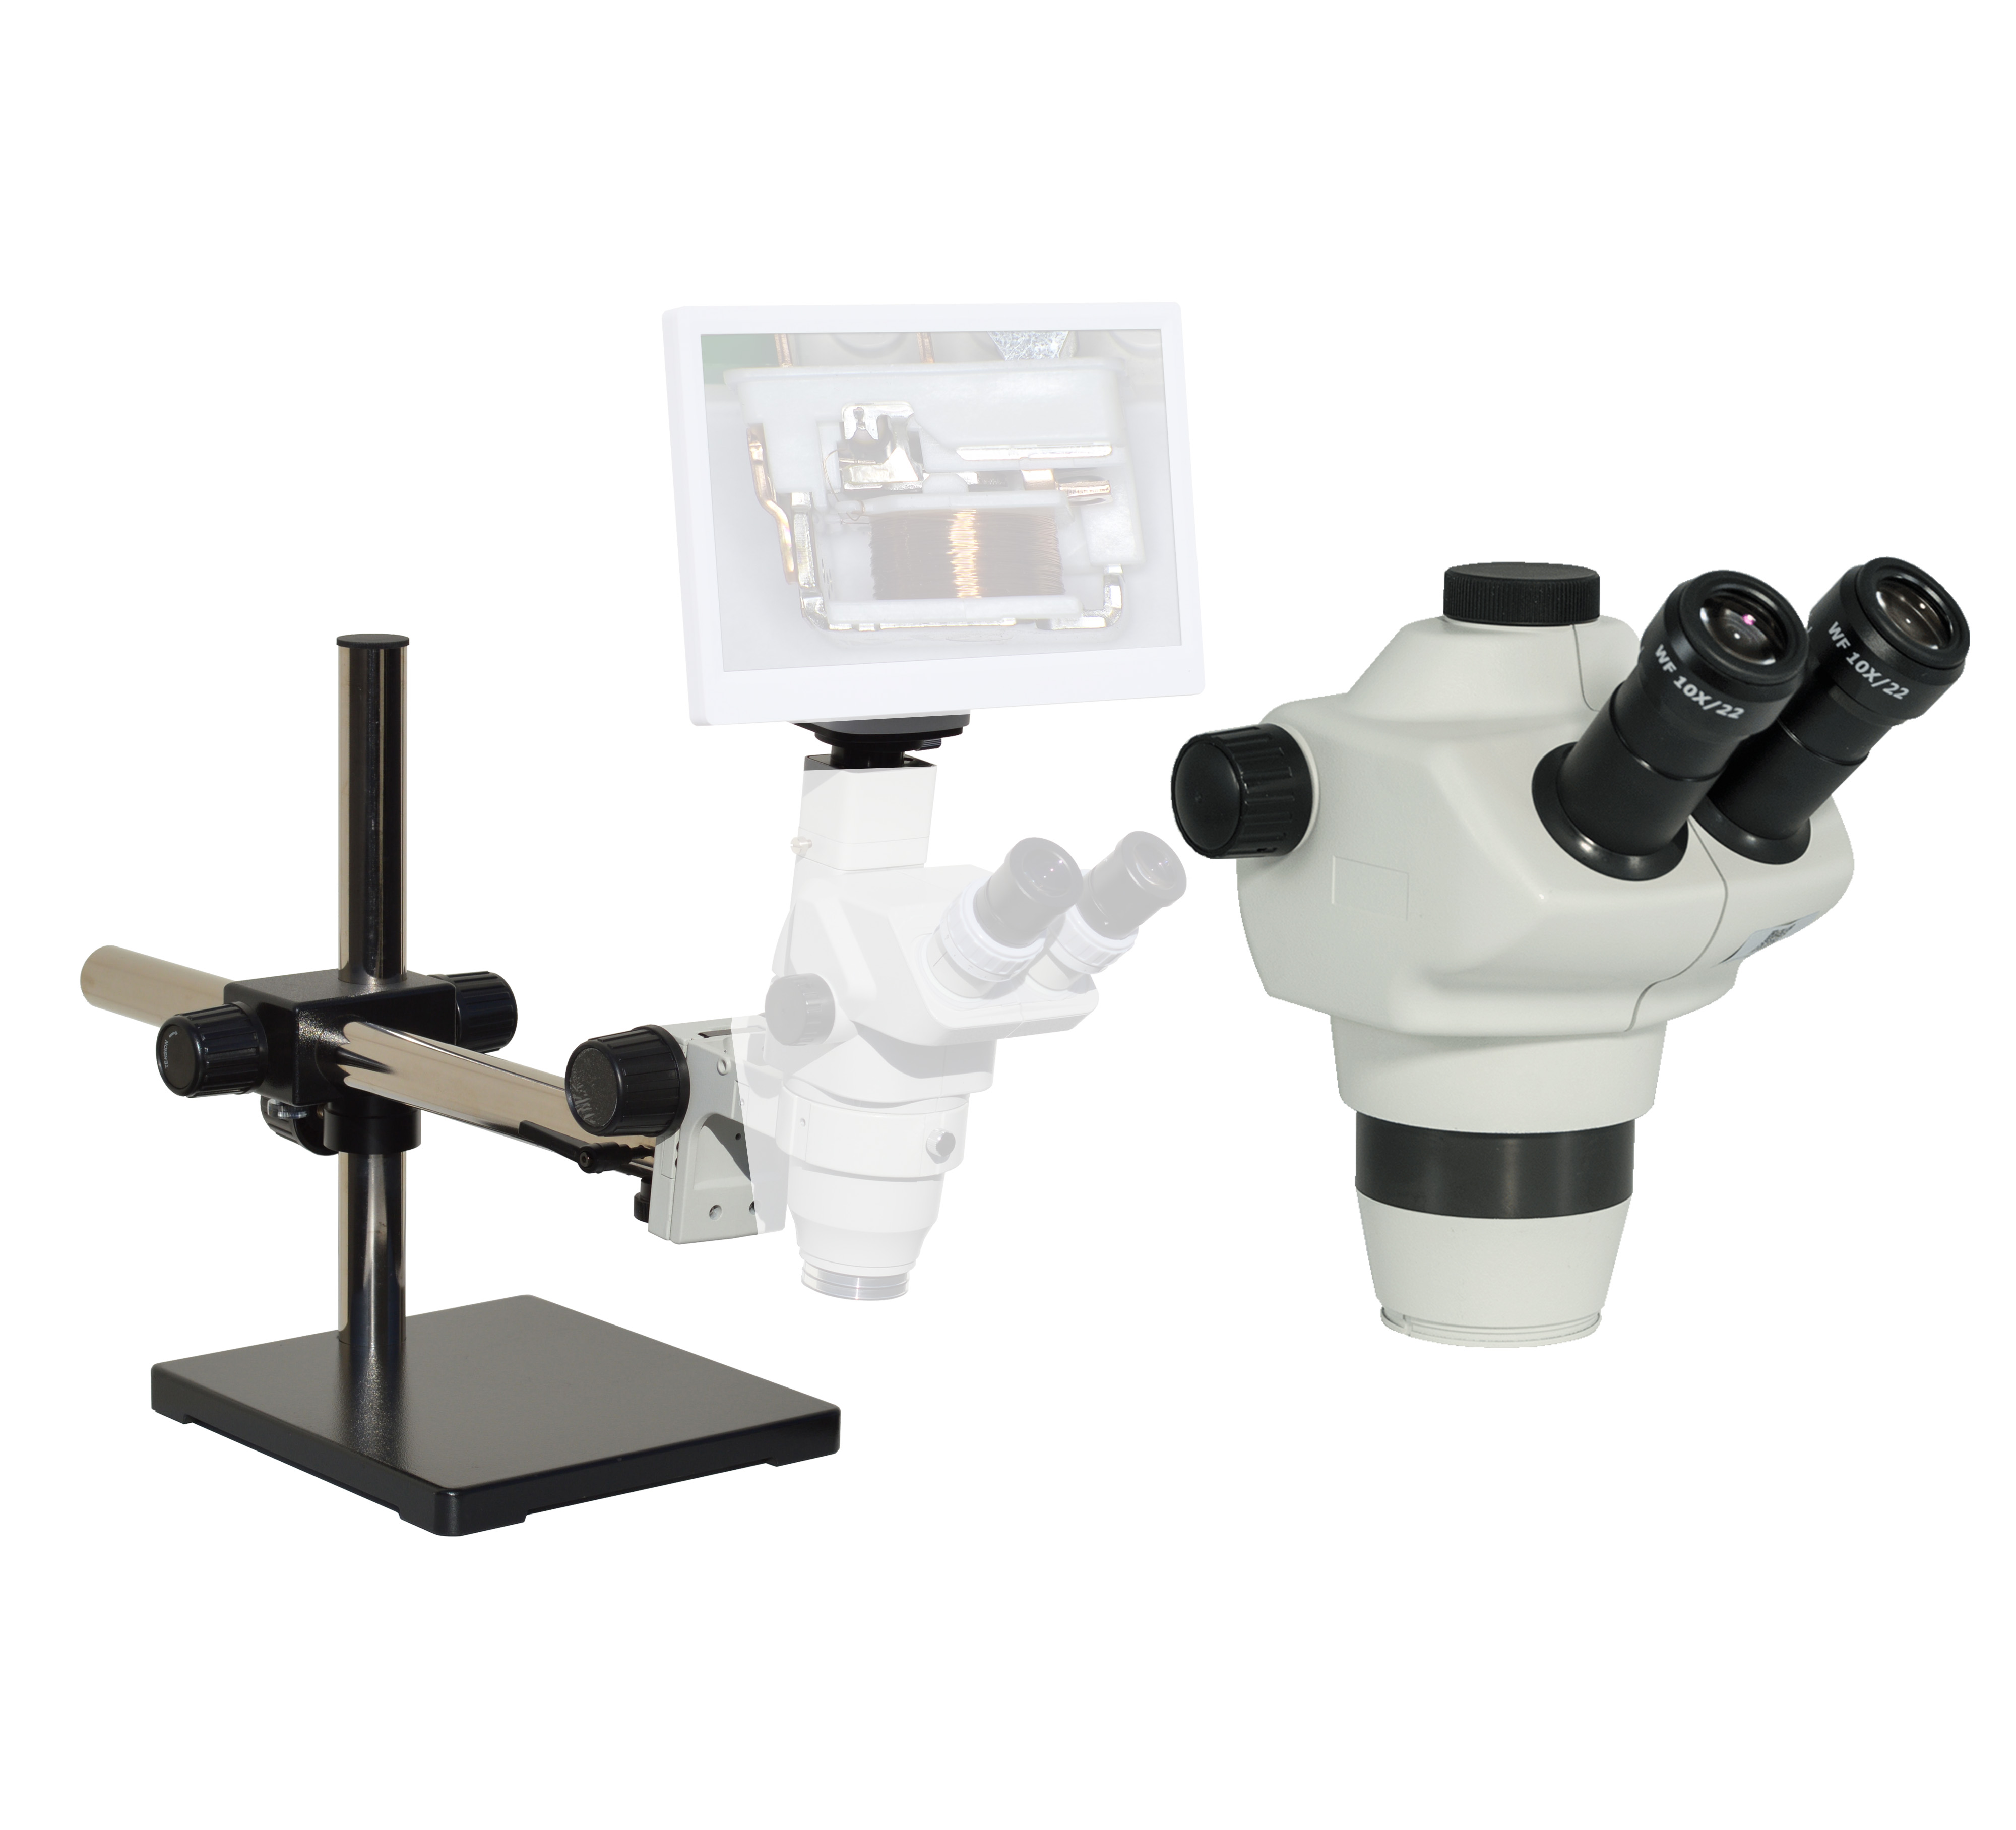 eTR600 Trinocular Digital Microscope series 8x-50x or possible 4x-200x [Starting at $1007]